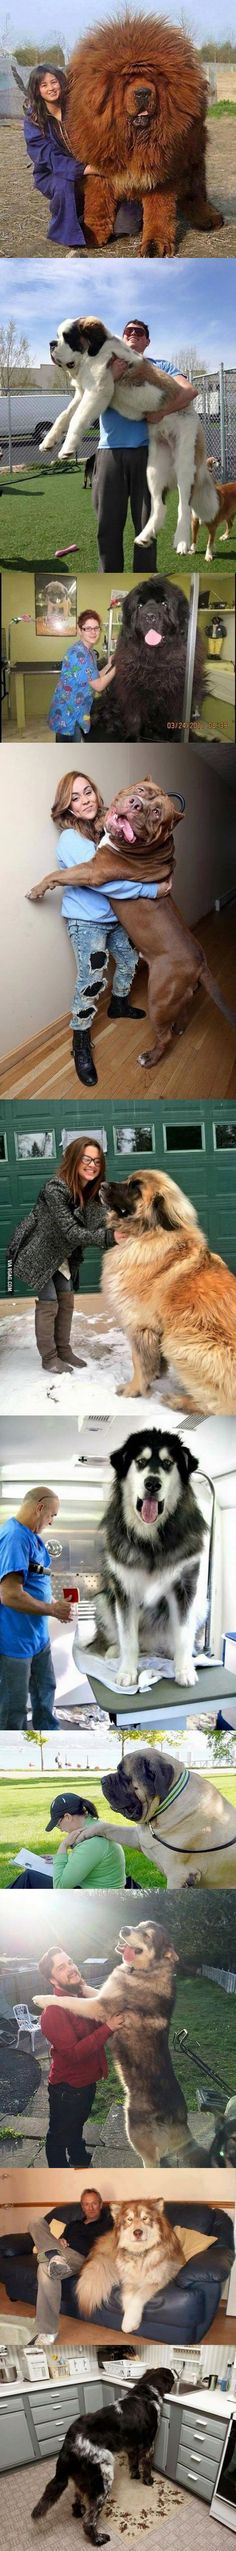 These are the biggest dogs in the world - Tiere - Perros Big Animals, Cute Little Animals, Cute Funny Animals, Funny Dogs, Animals And Pets, Funny Fails, Huge Dogs, Giant Dogs, Massive Dogs